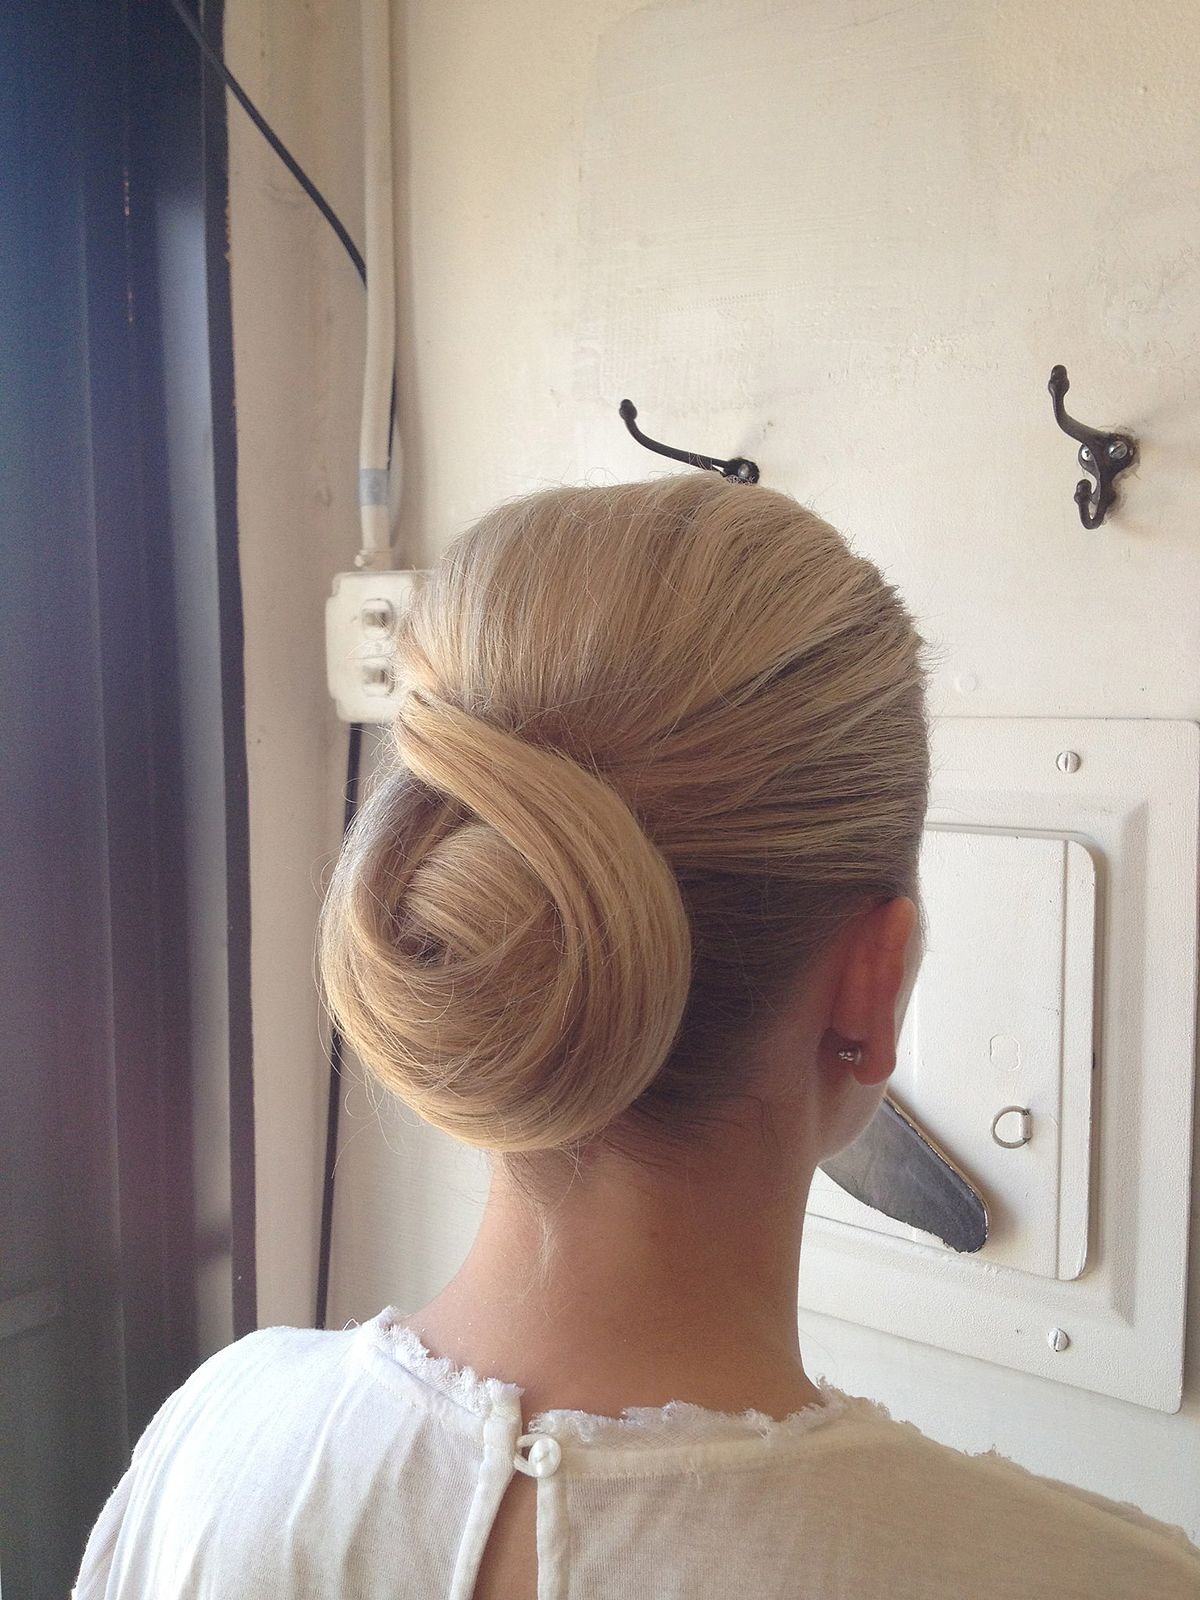 Shinion Hair Style 2014 chignon hairstyle 5941 by wearticles.com